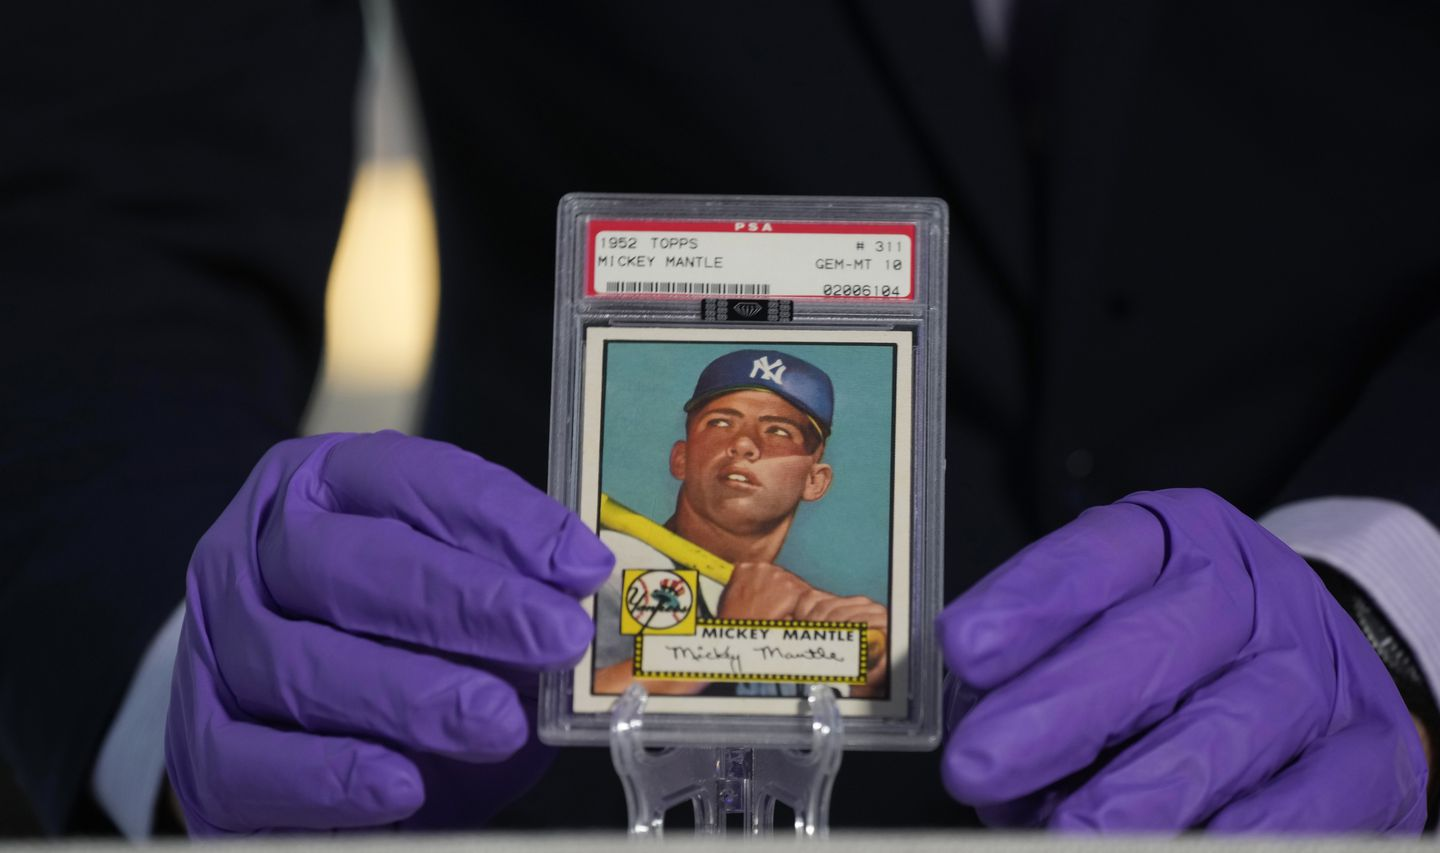 The 1952 Topps Mickey Mantle card is known as a Holy Grail of sports cards. It's shown here during a memorabilia exhibit ahead of the MLB All-Star Game in July in Denver.